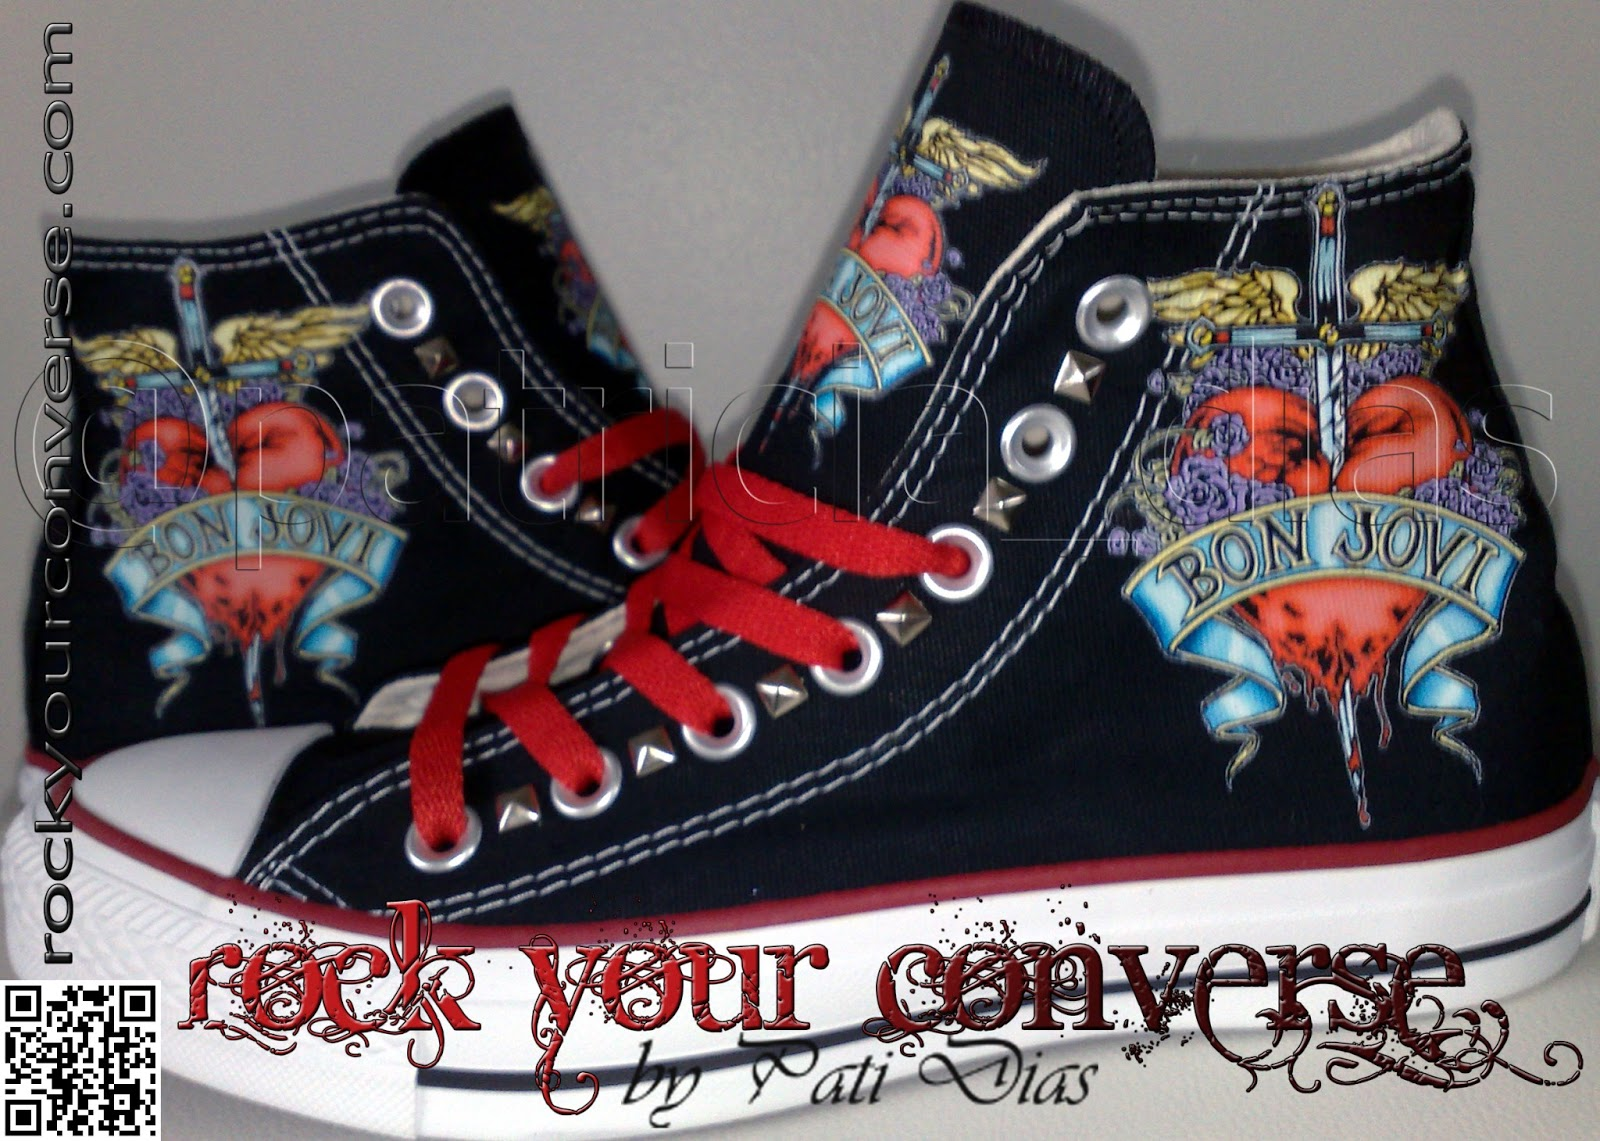 306016427c0e4 Converse All Star Customizado - Rock Your Converse!: O som hard rock ...